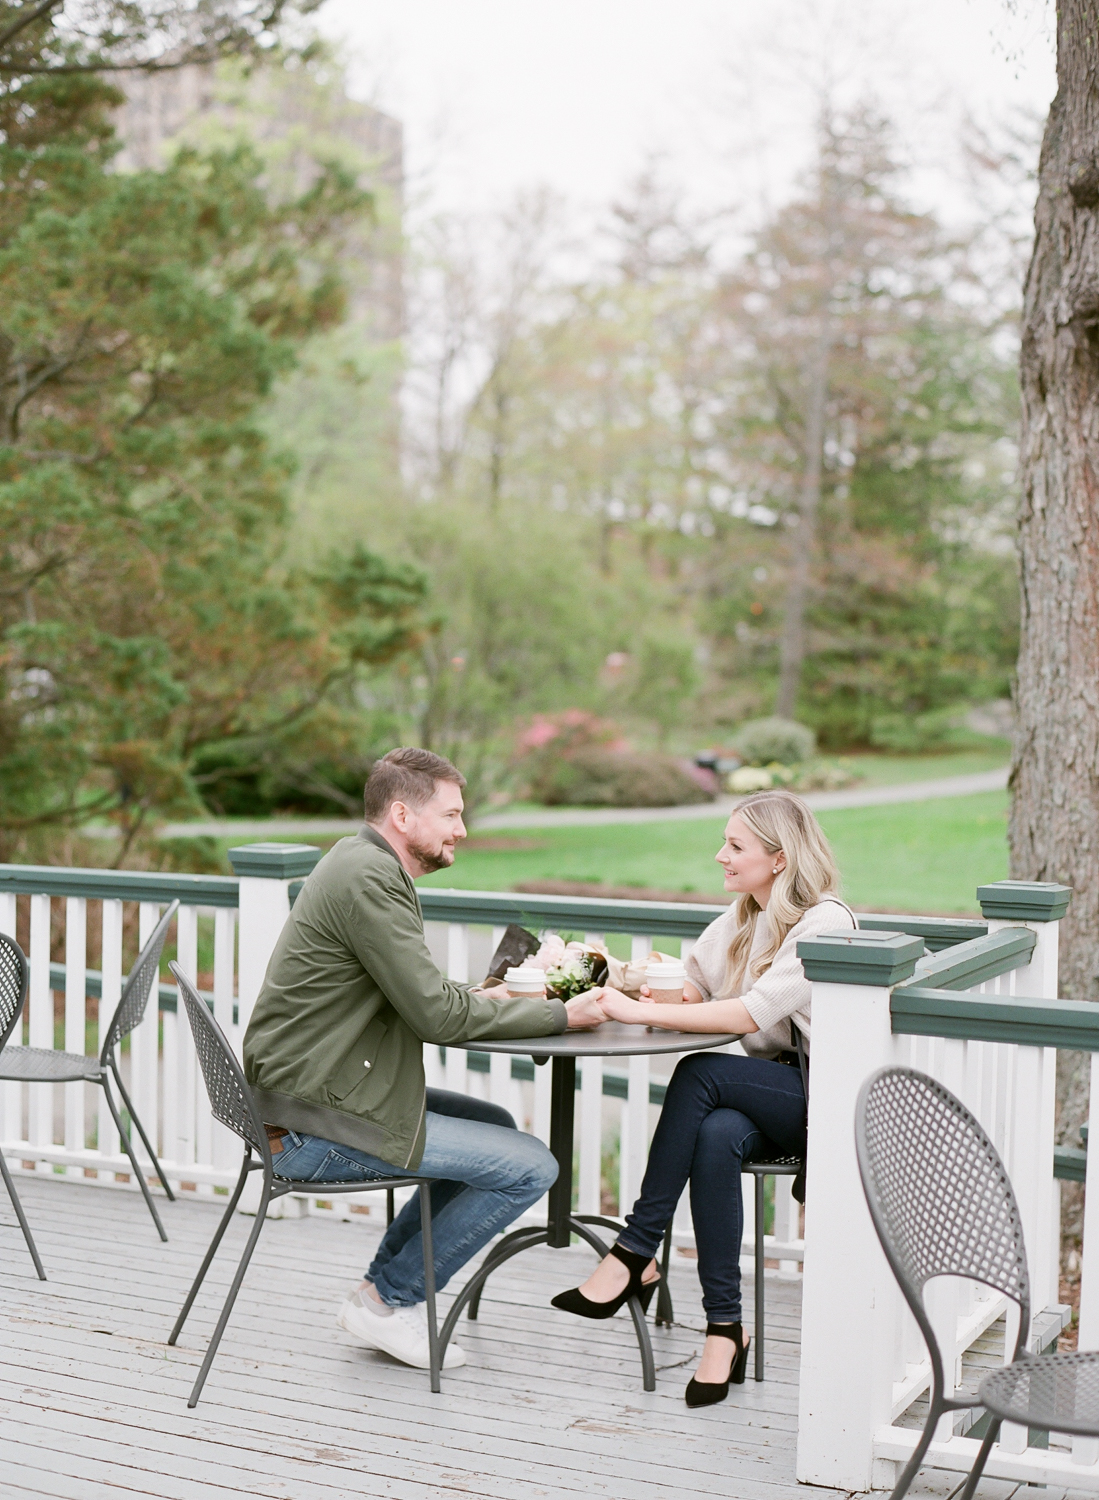 Halifax Engagement Session in Halifax Public Gardens captured on Film, Jacqueline Anne Photography